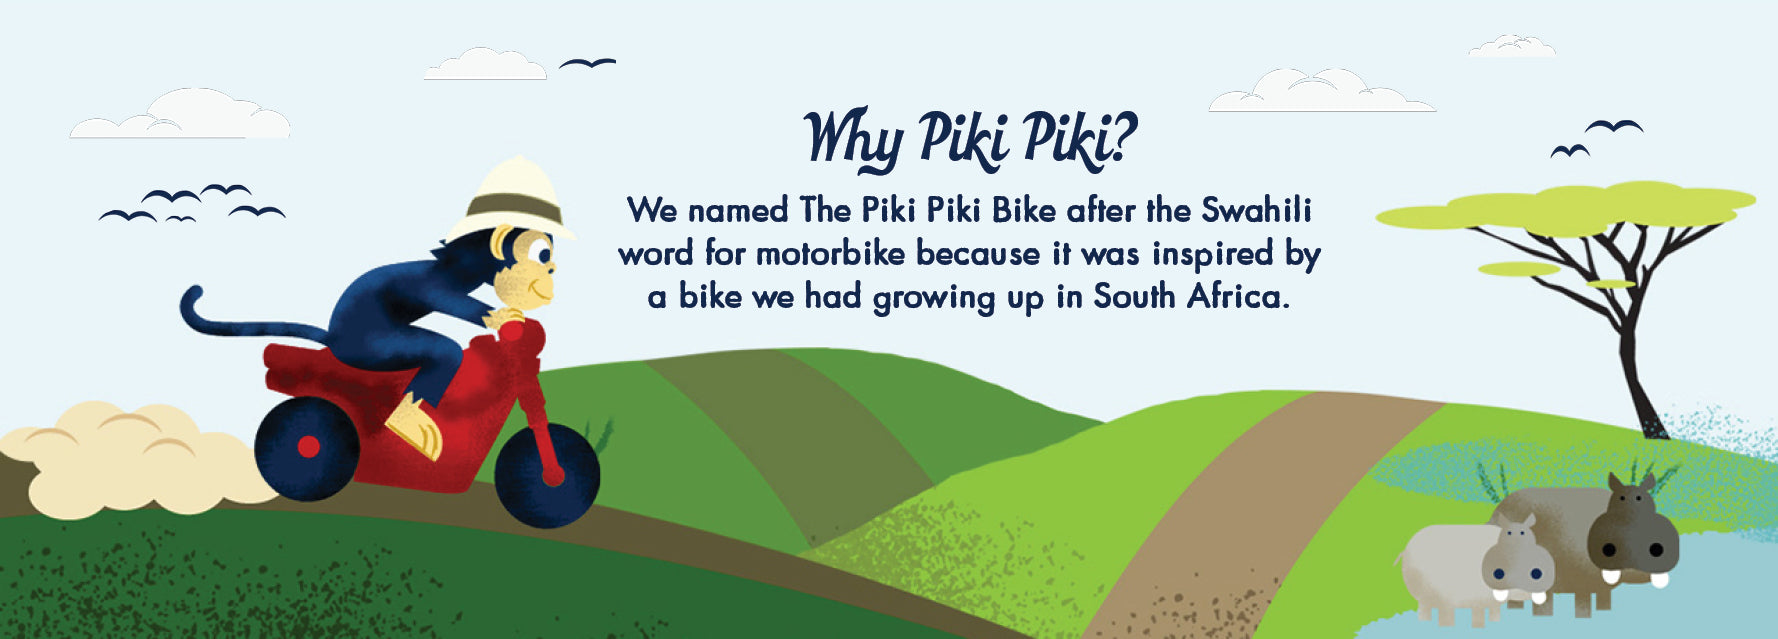 The Piki Piki Bike